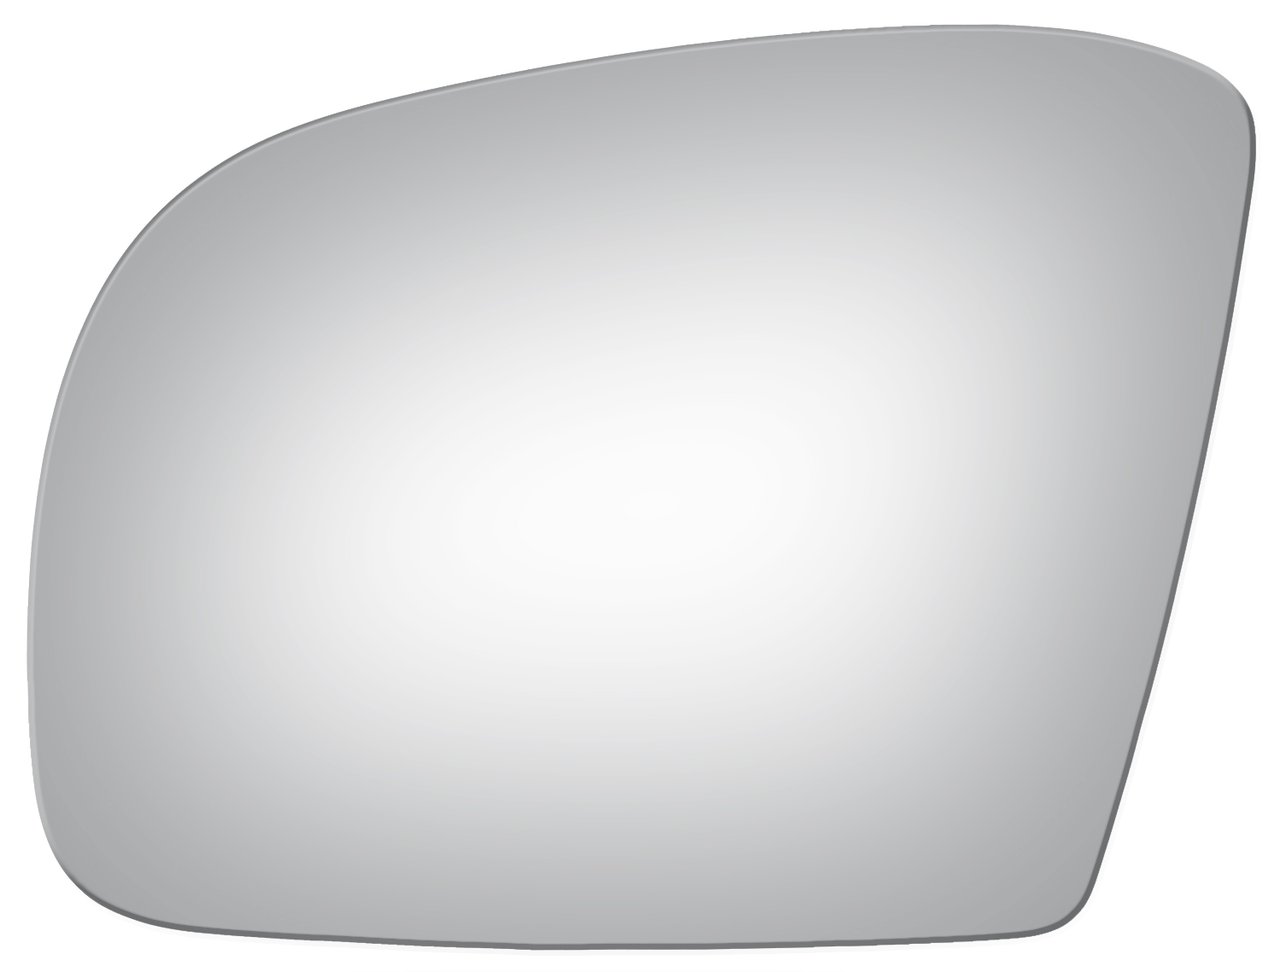 2006 mercedes benz ml350 driver side mirror 4121 for Driver side mirror replacement mercedes benz